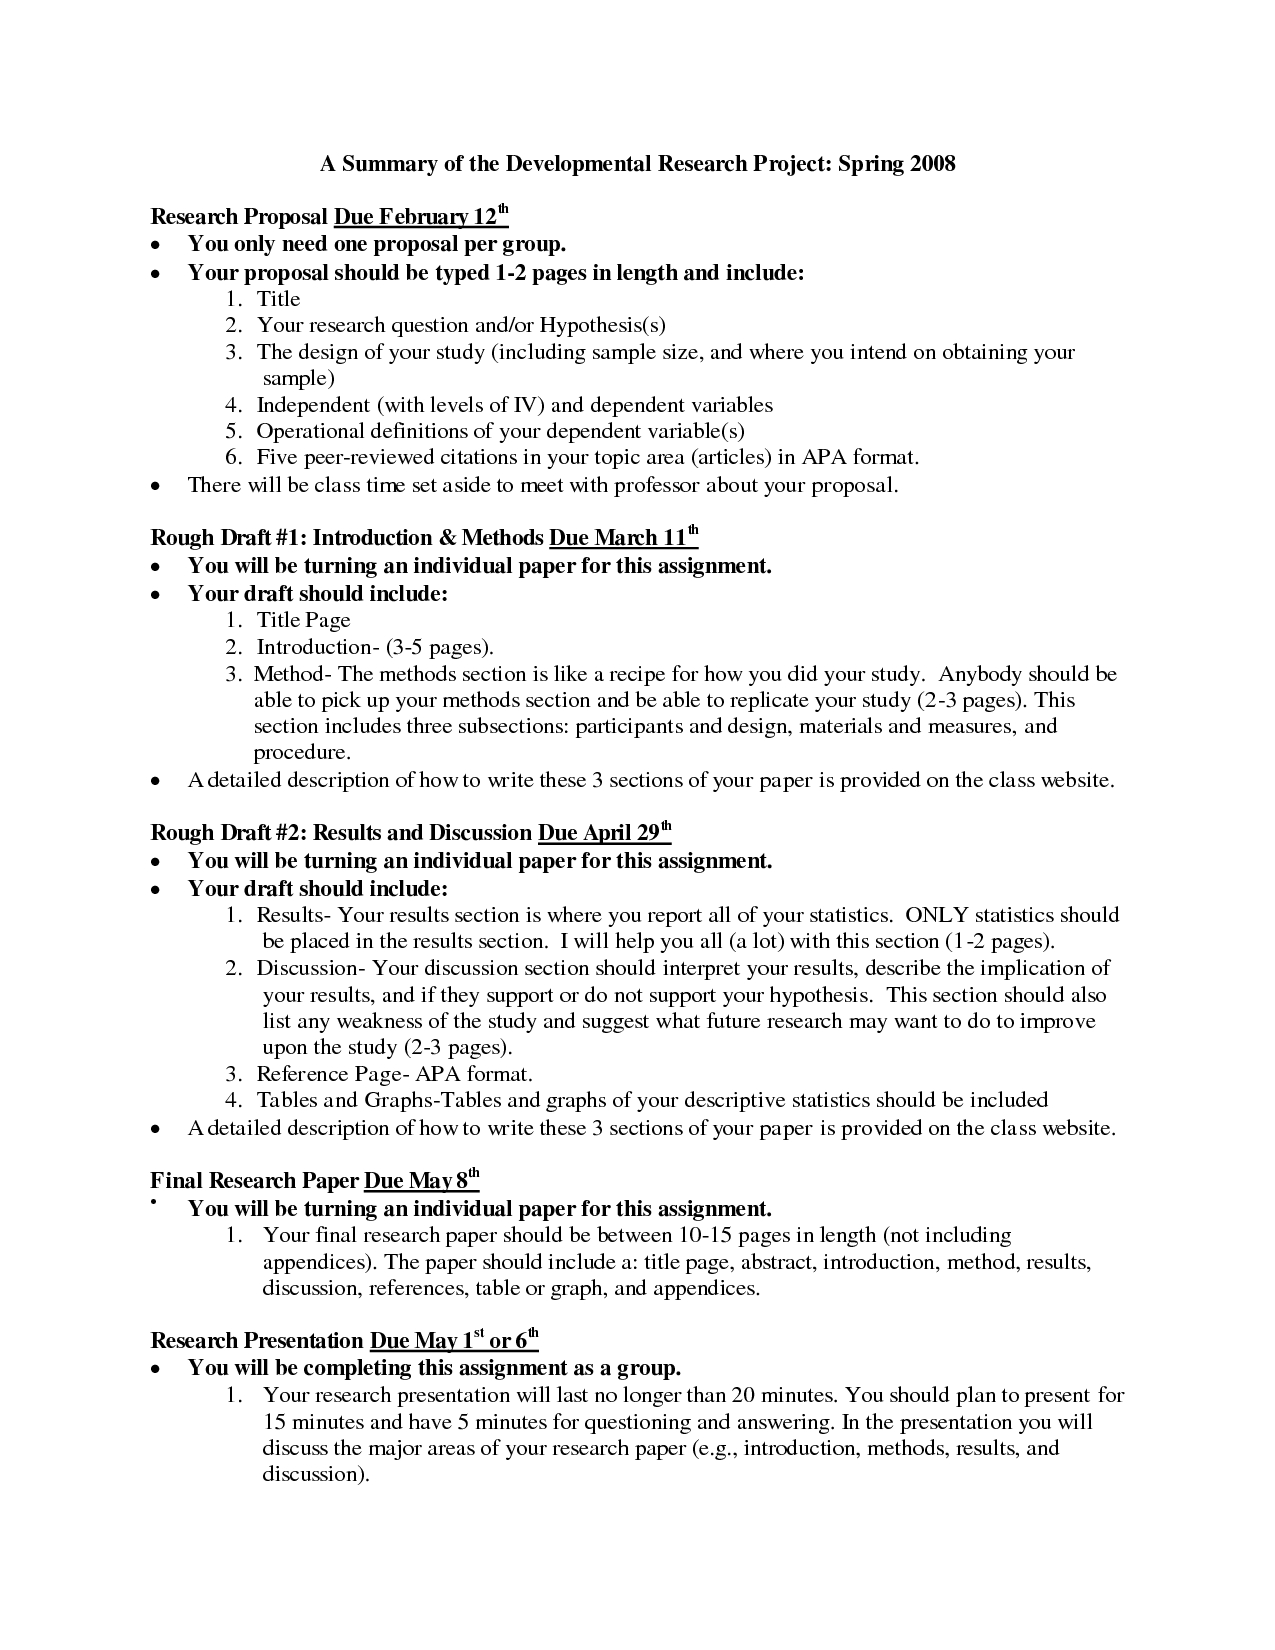 012 Good Research Paper Topic Psychology Undergraduate Resume Unique Sample Singular Topics 2019 Ideas In Business And Finance For College Students Full